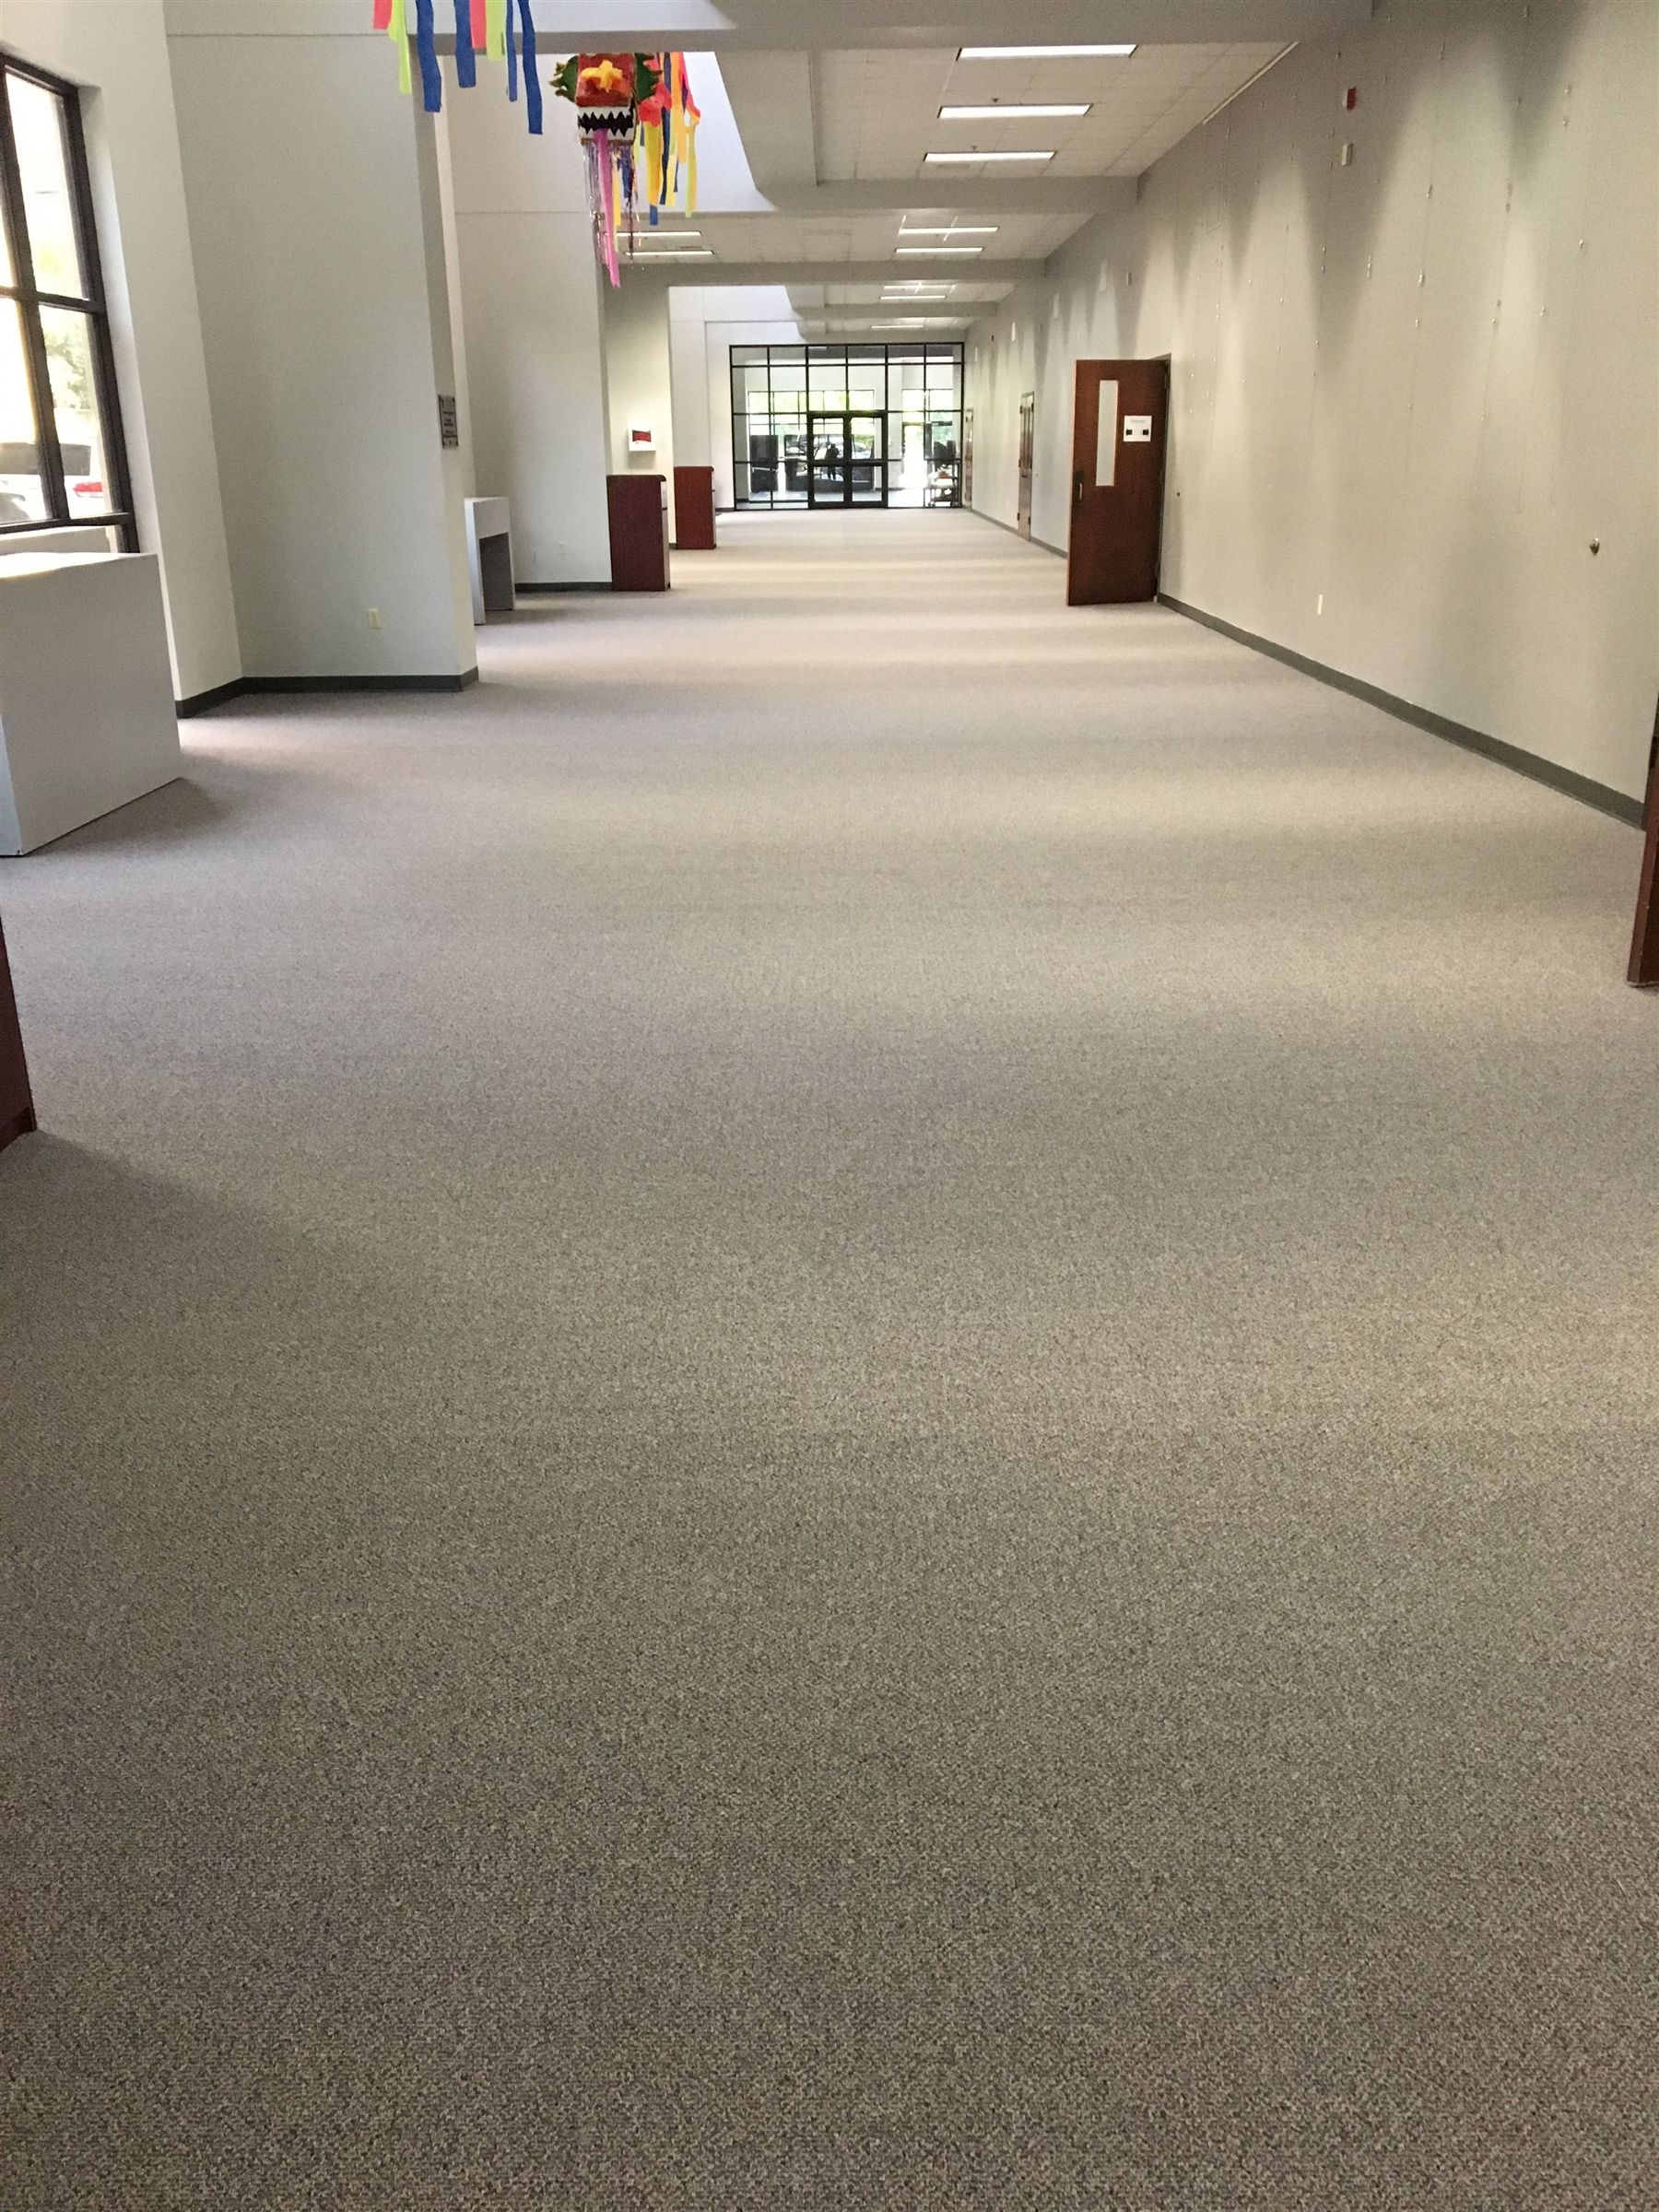 NEW carpet in CPAC